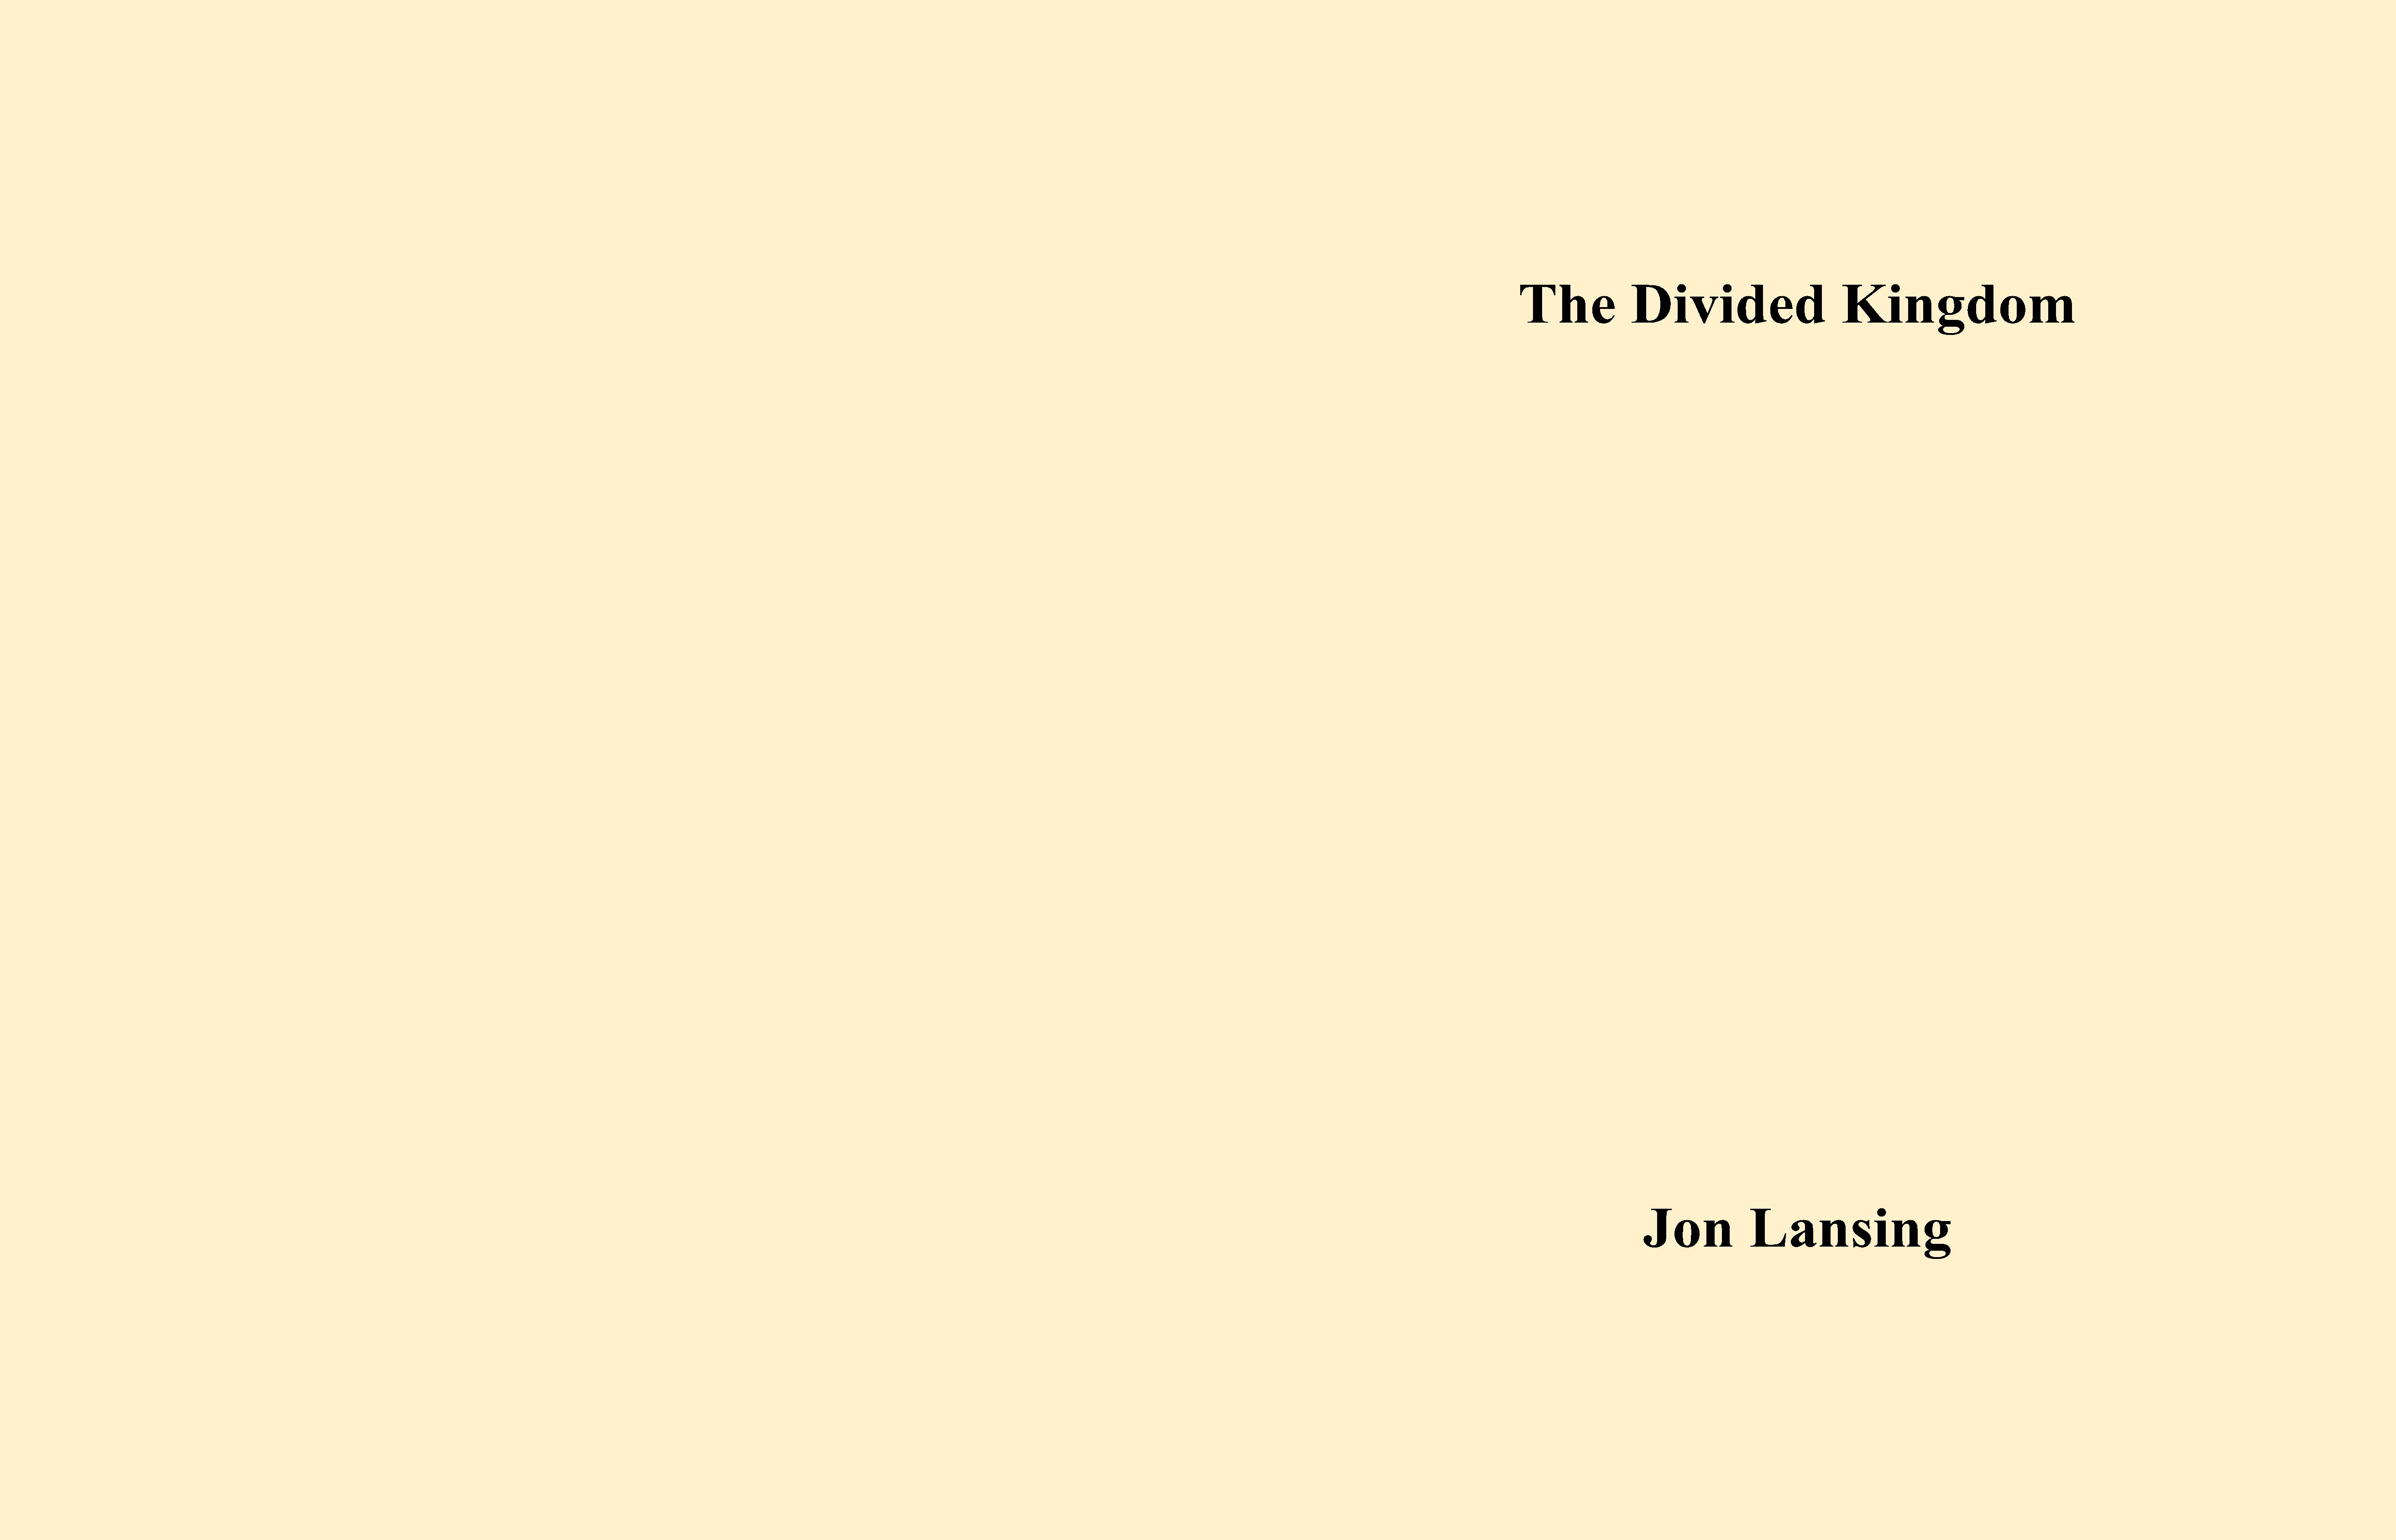 The Divided Kingdom cover image